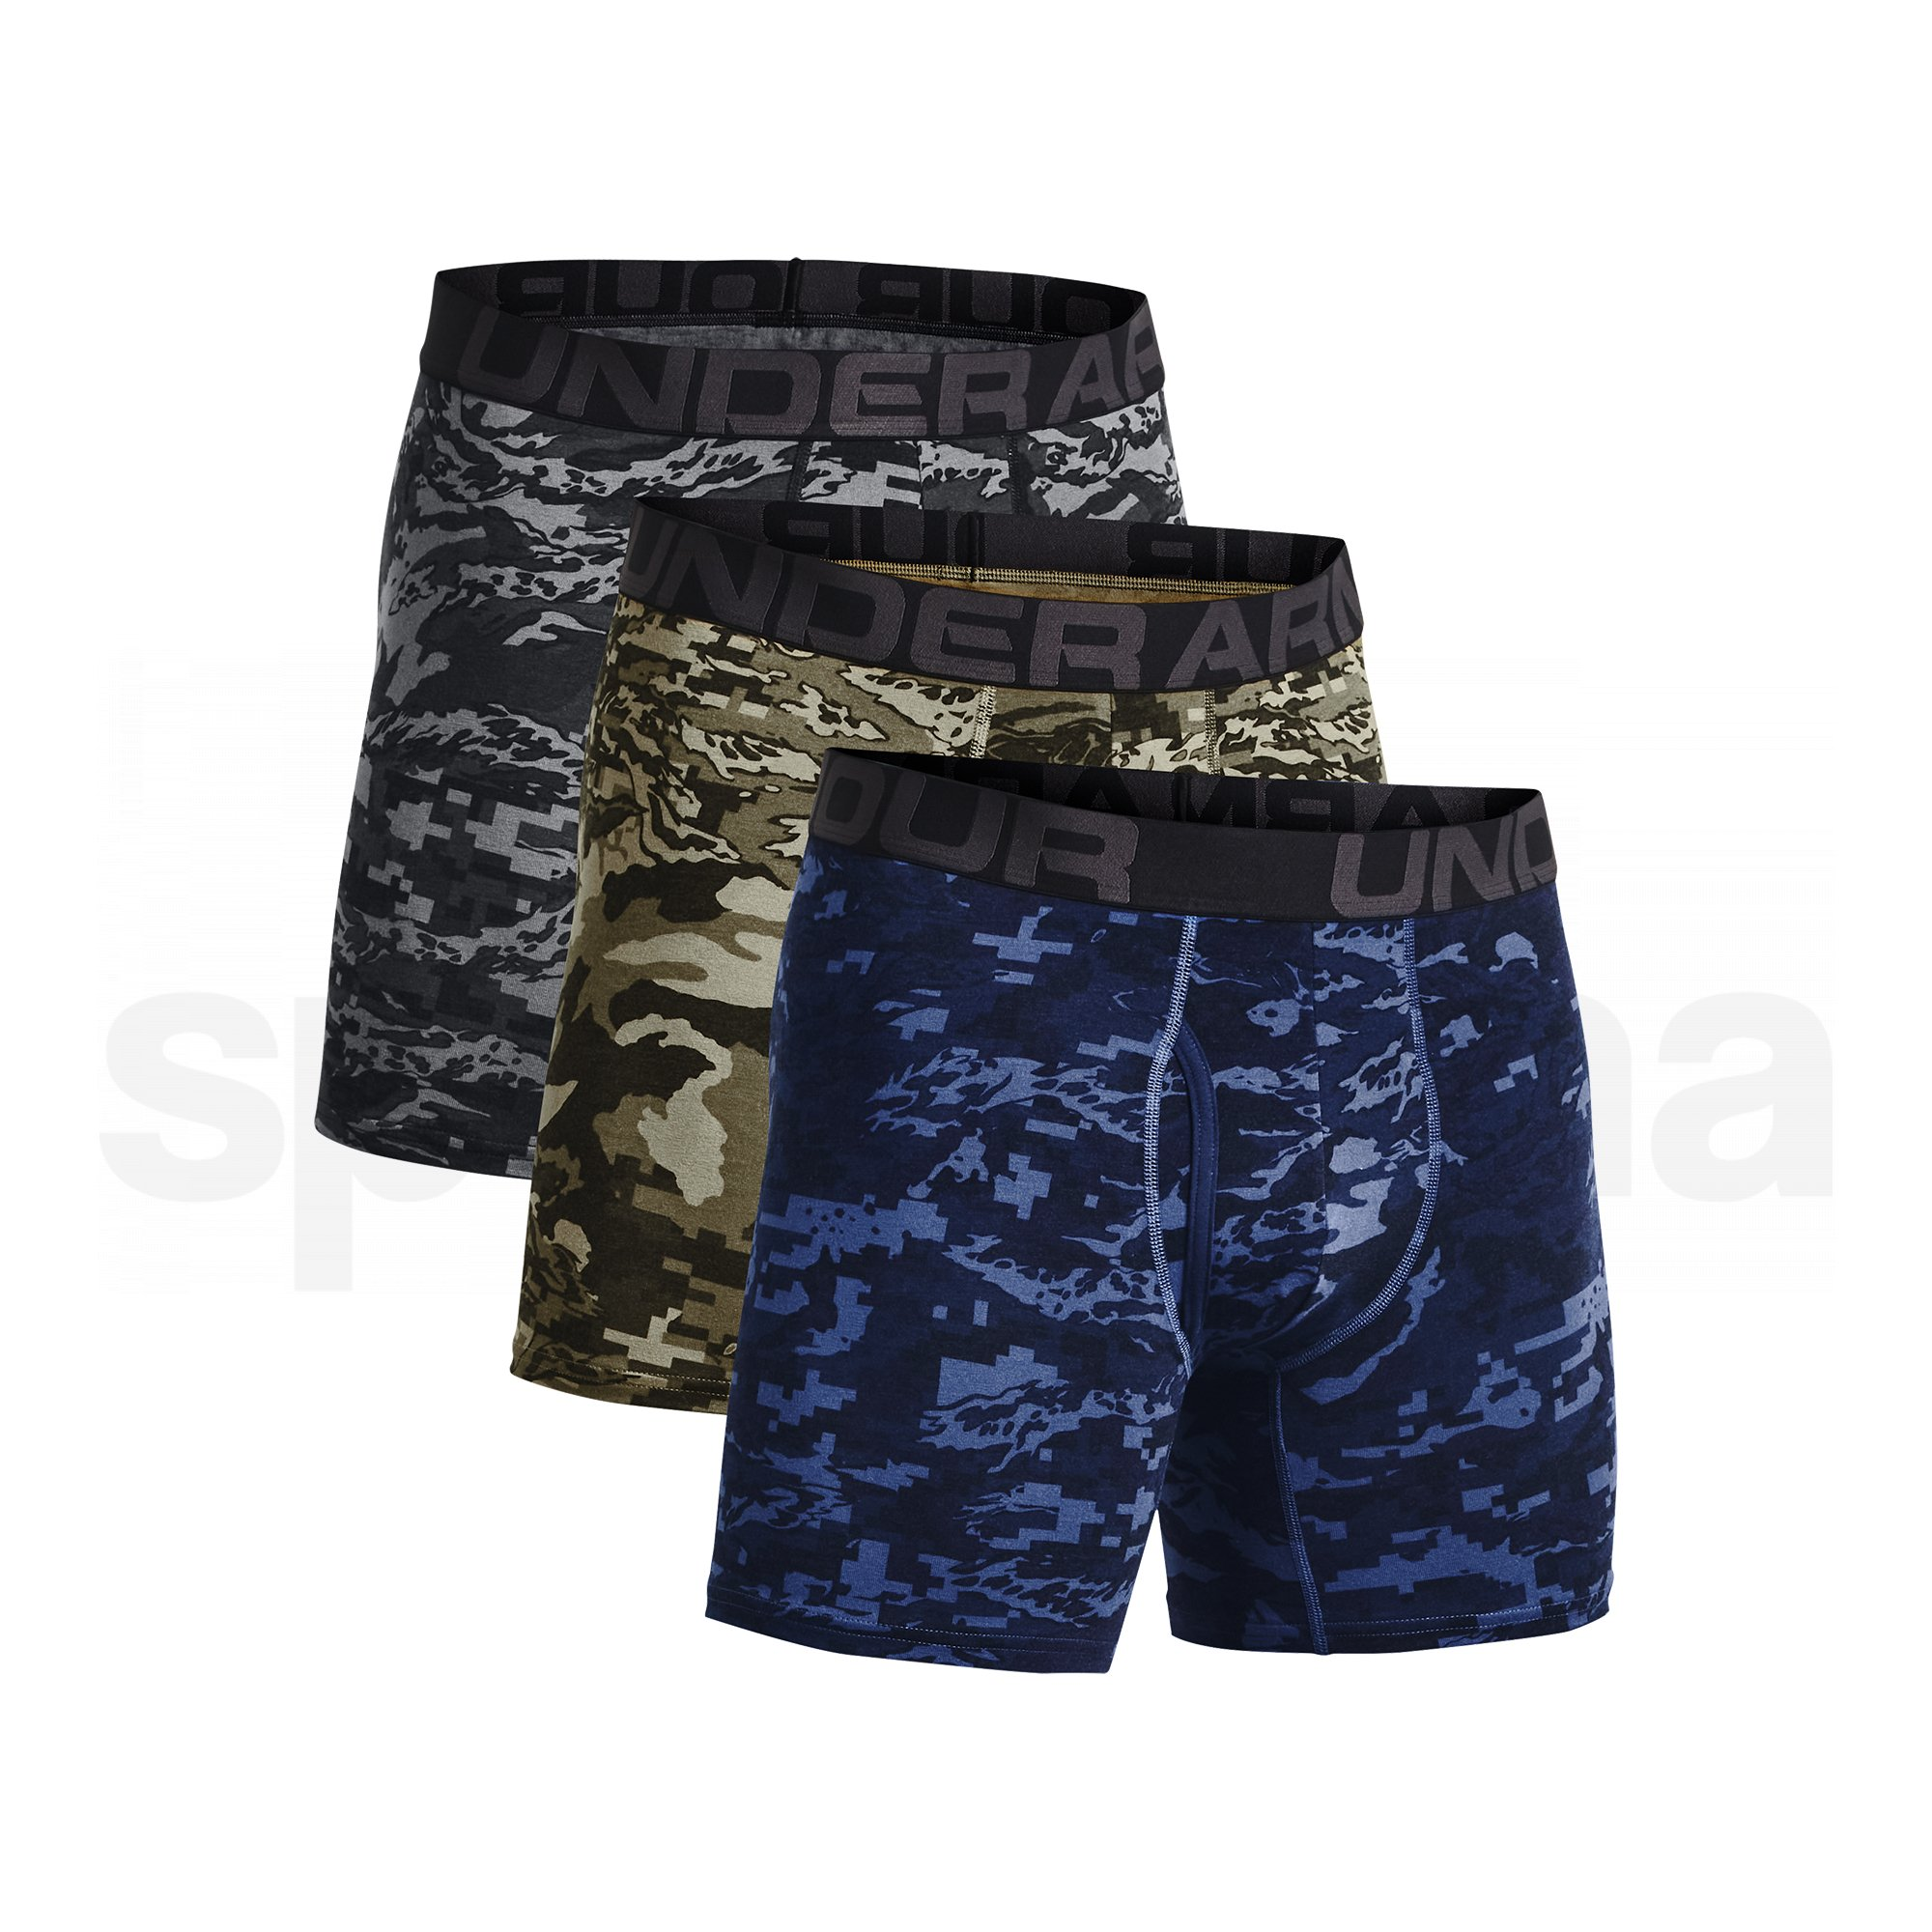 1363615-004_Under Armour CC 6in Novelty 3 Pack